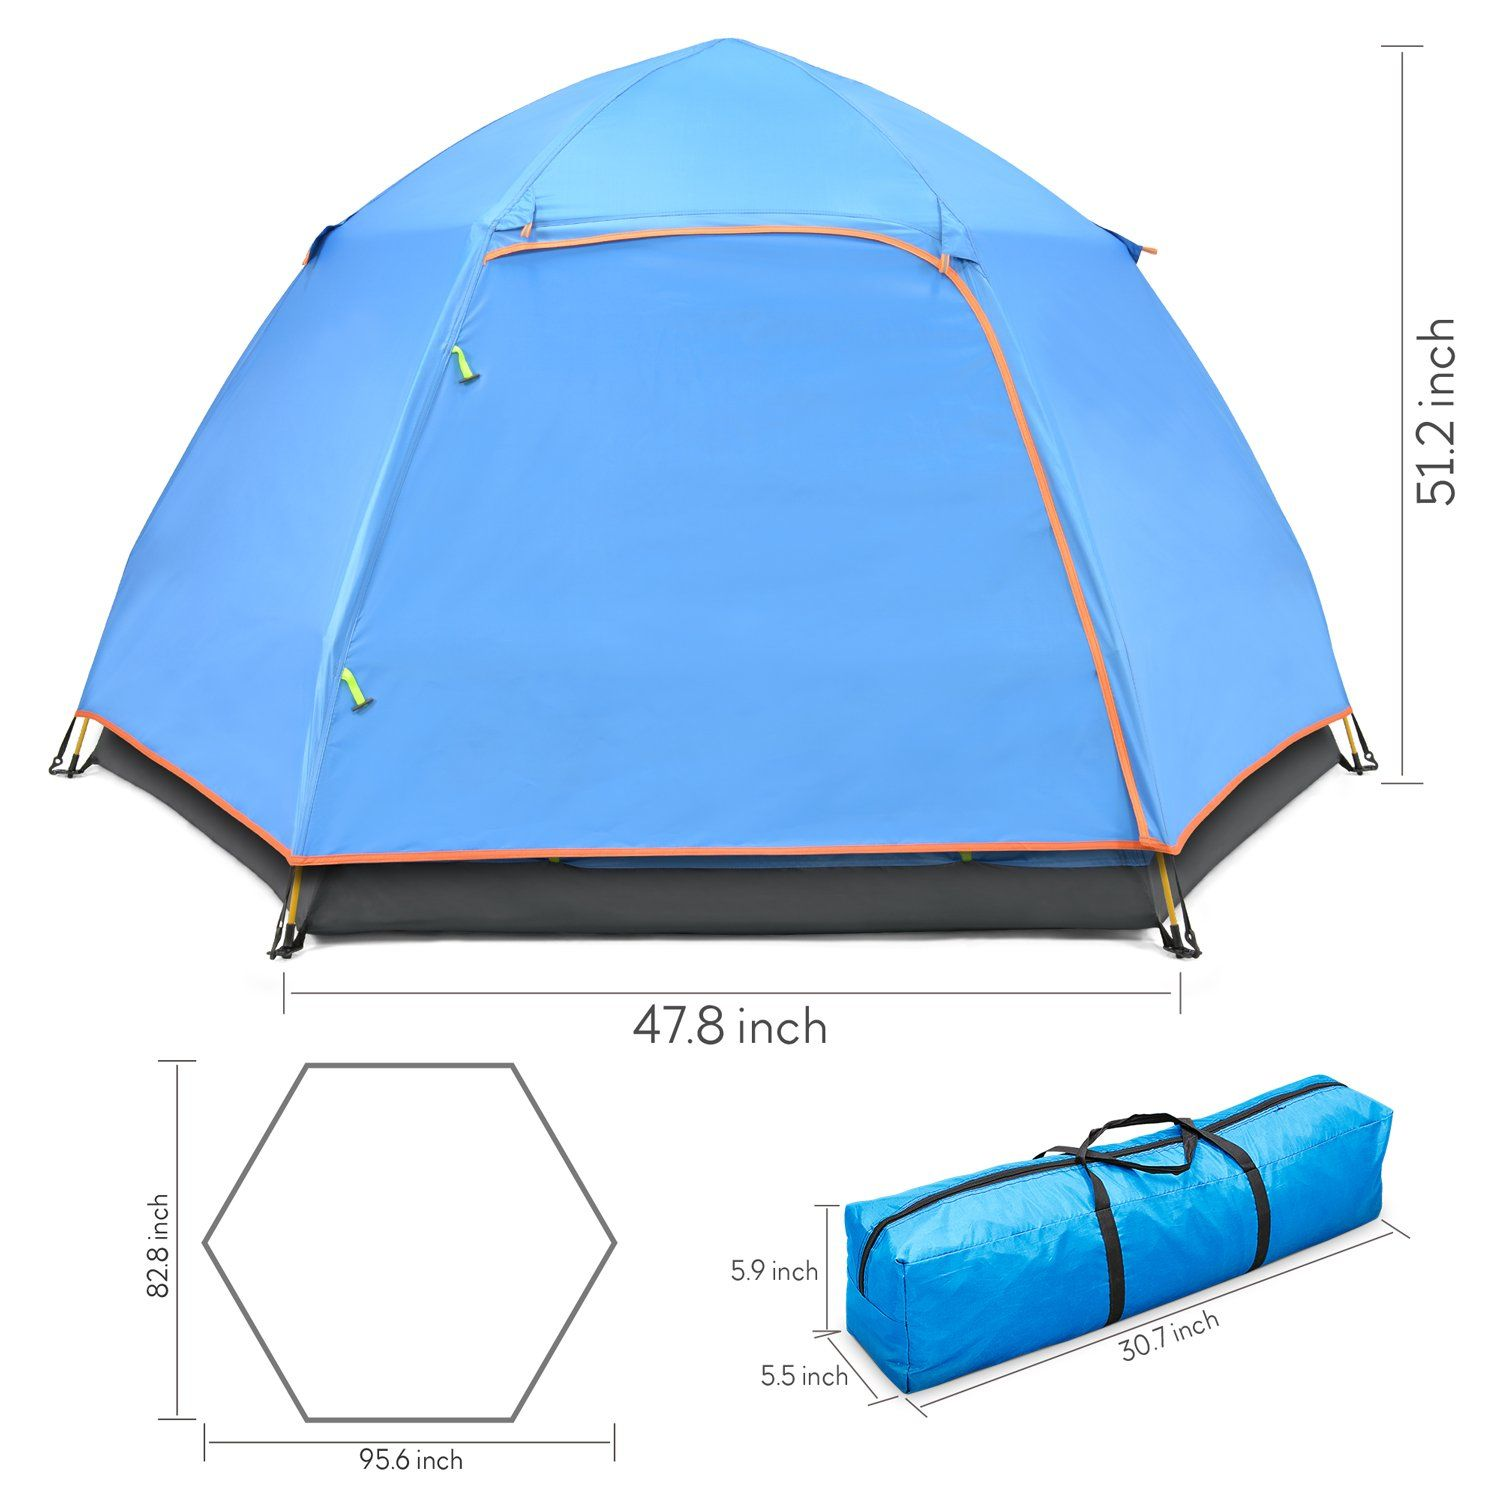 Amagoing C&ing Tent 4 Person Instant Pop Up Family Tent Double Layer Waterproof 4 Season Backpacking Tent for Picnic Hiking Fishing Traveling u003eu003eu003e You can ...  sc 1 st  Pinterest & Amagoing Camping Tent 4 Person Instant Pop Up Family Tent Double ...